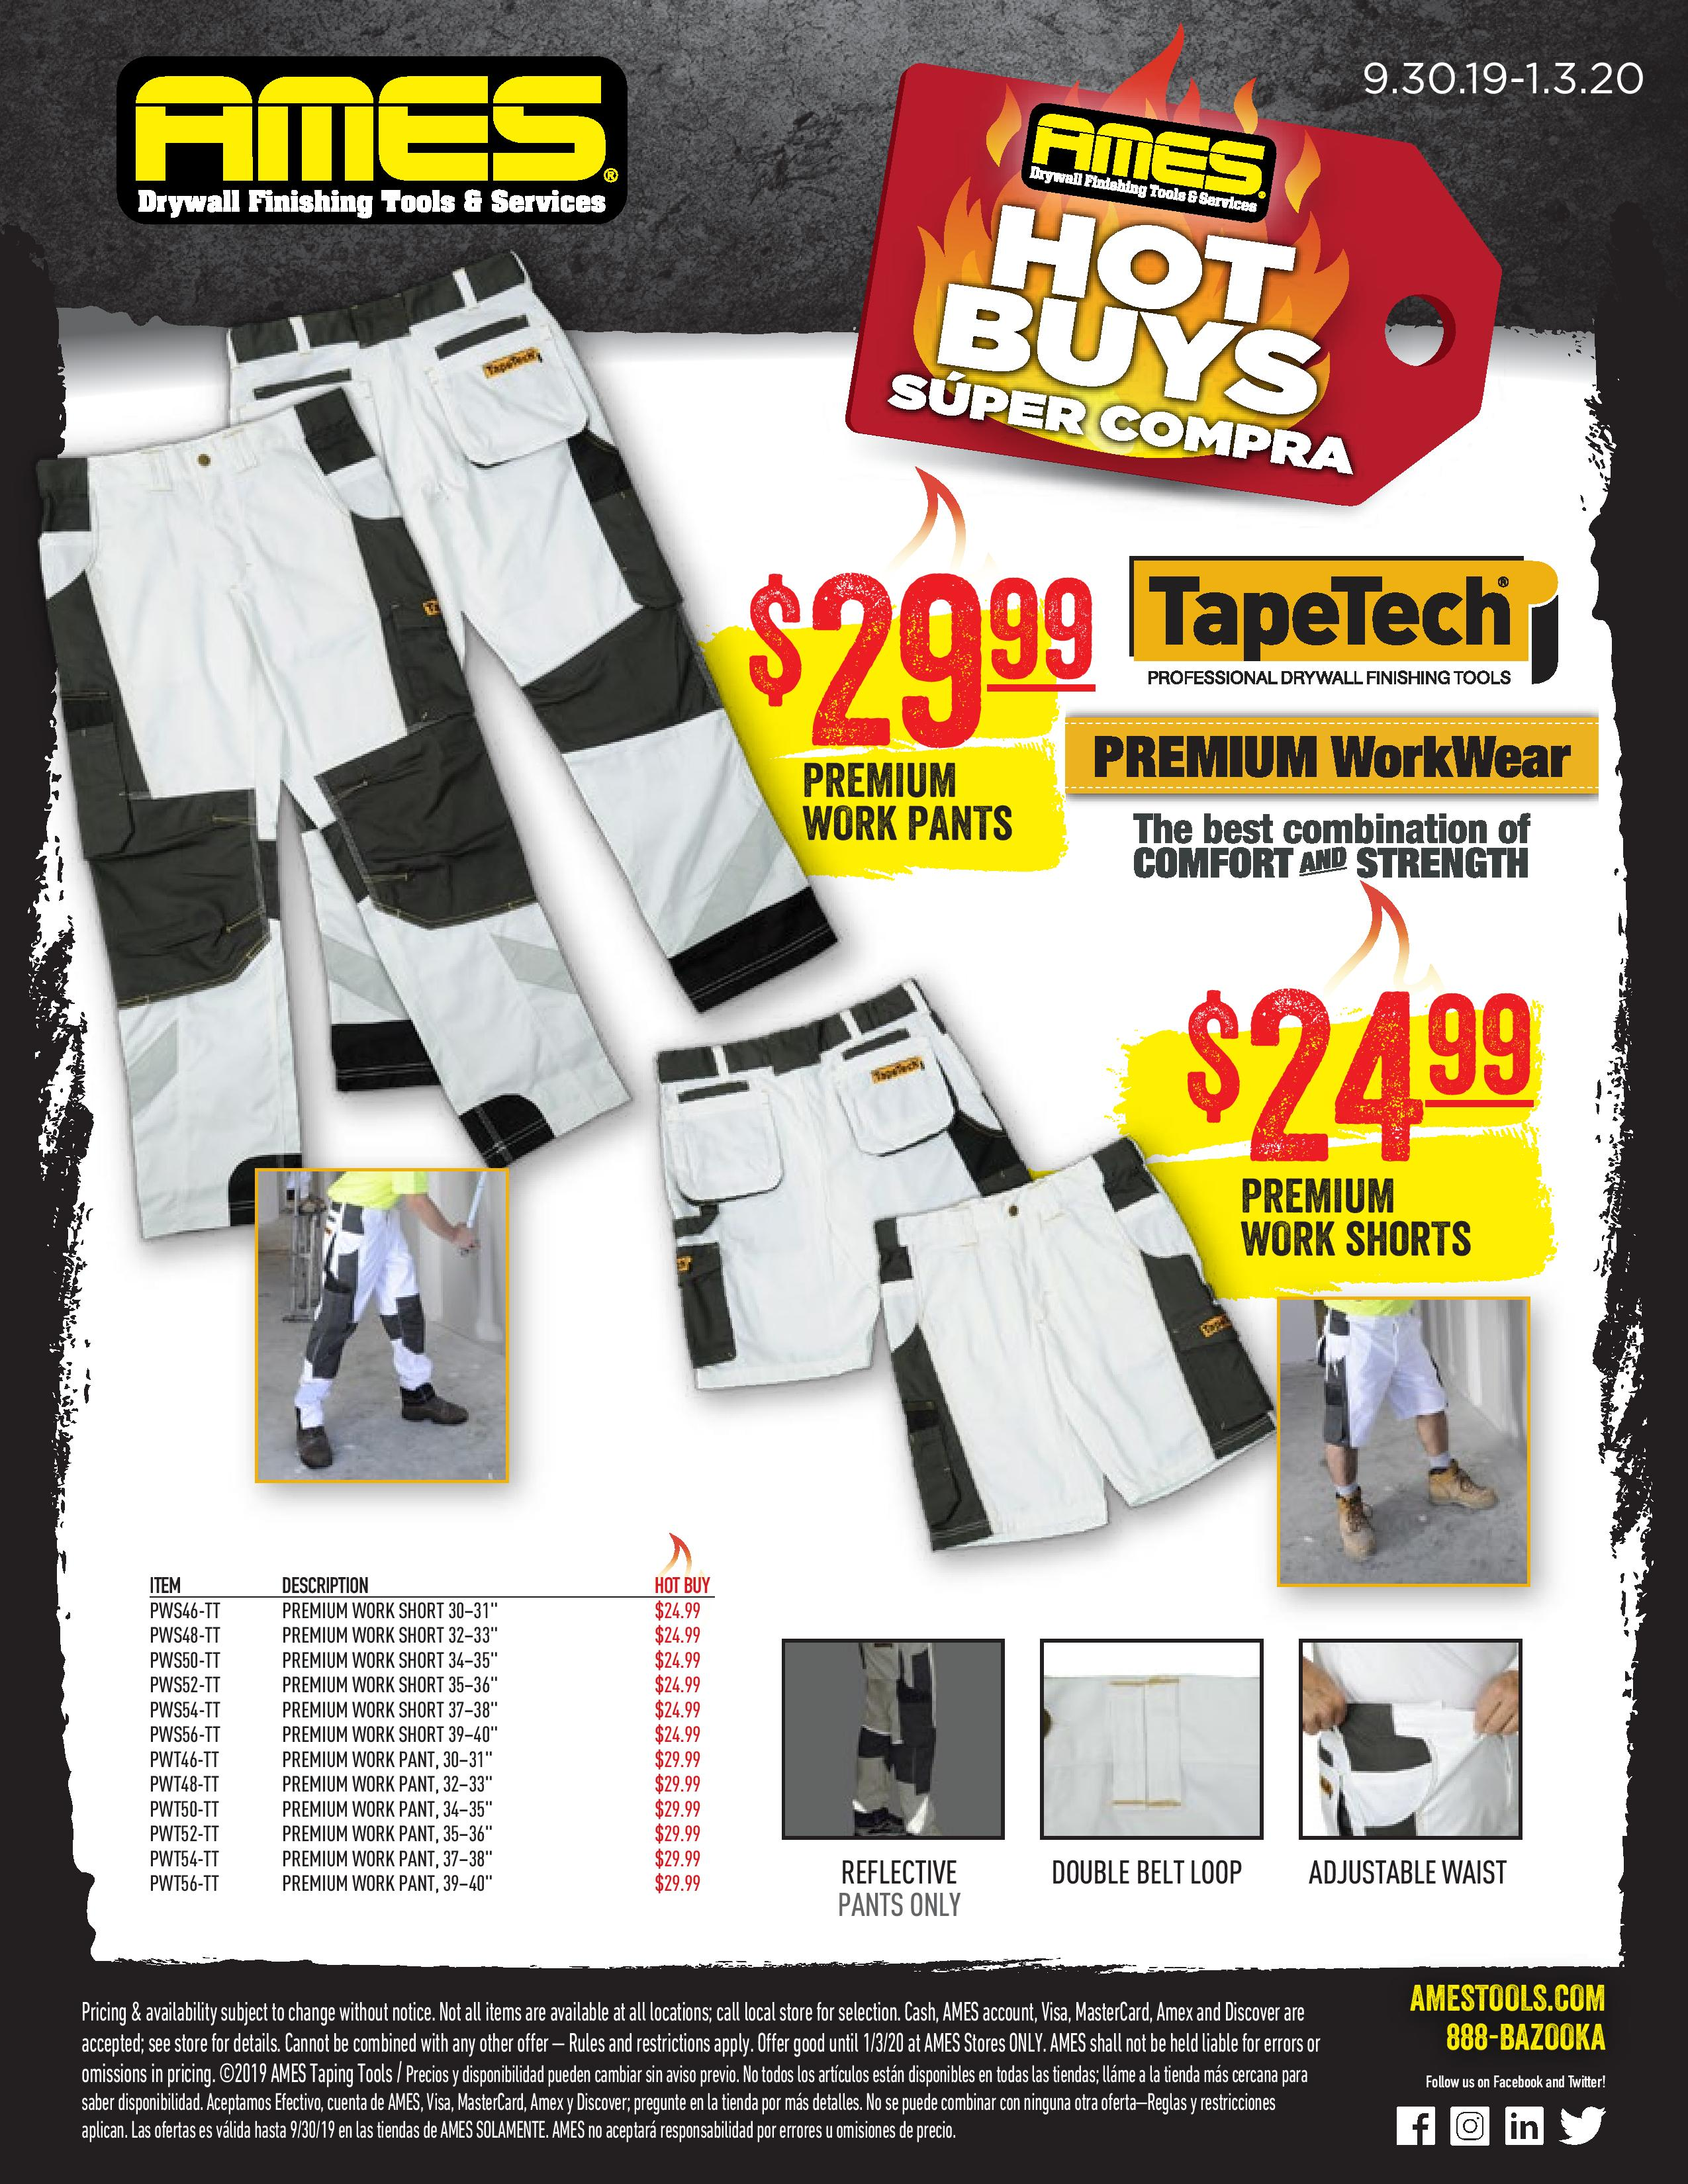 TapeTech Pants on Sale at AMES!-tapetech-short-pants-hot-buy-page-001.jpg